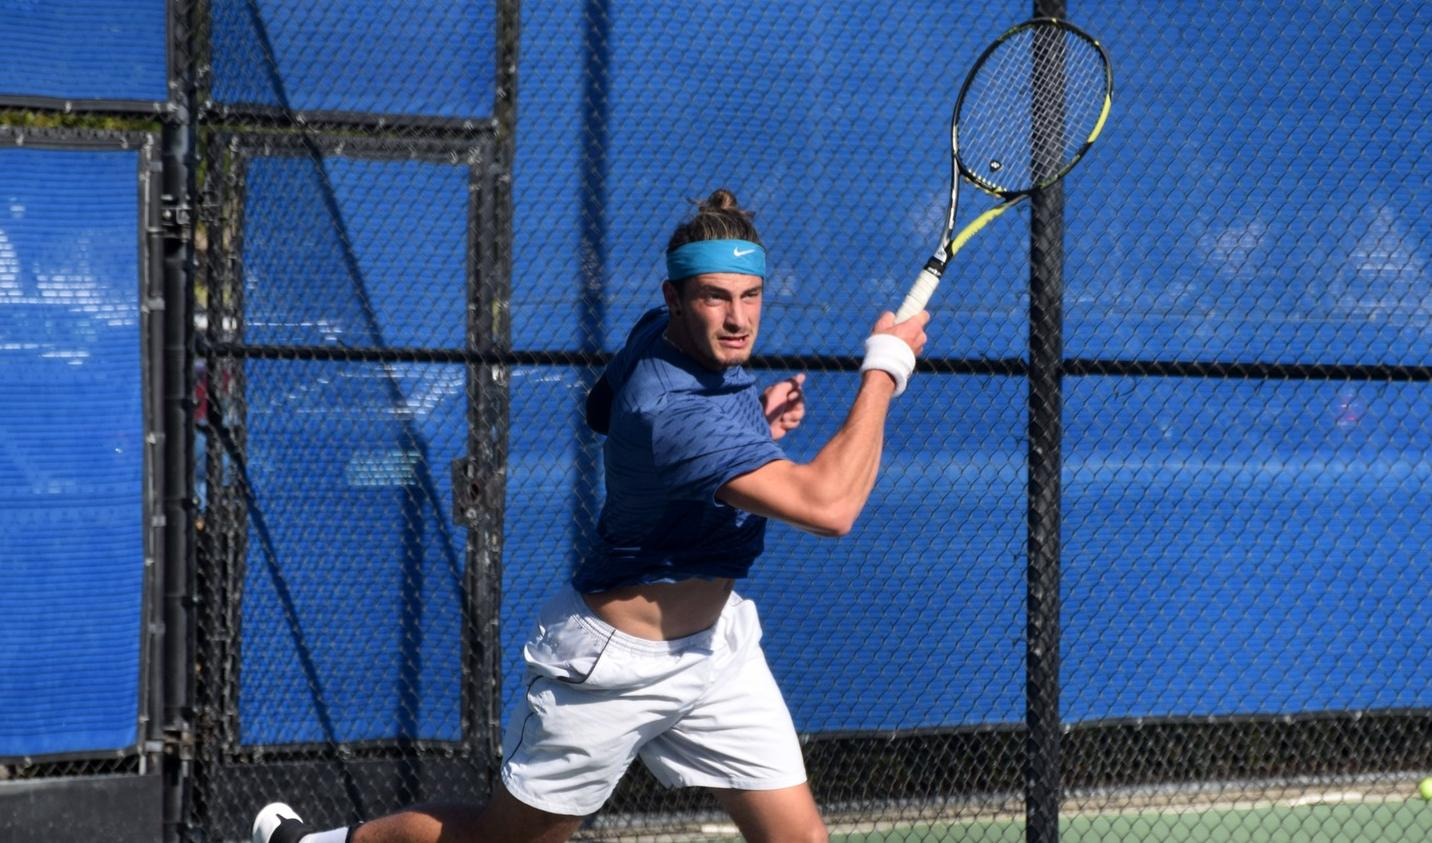 Men's tennis team topples Division III Wisconsin-Whitewater